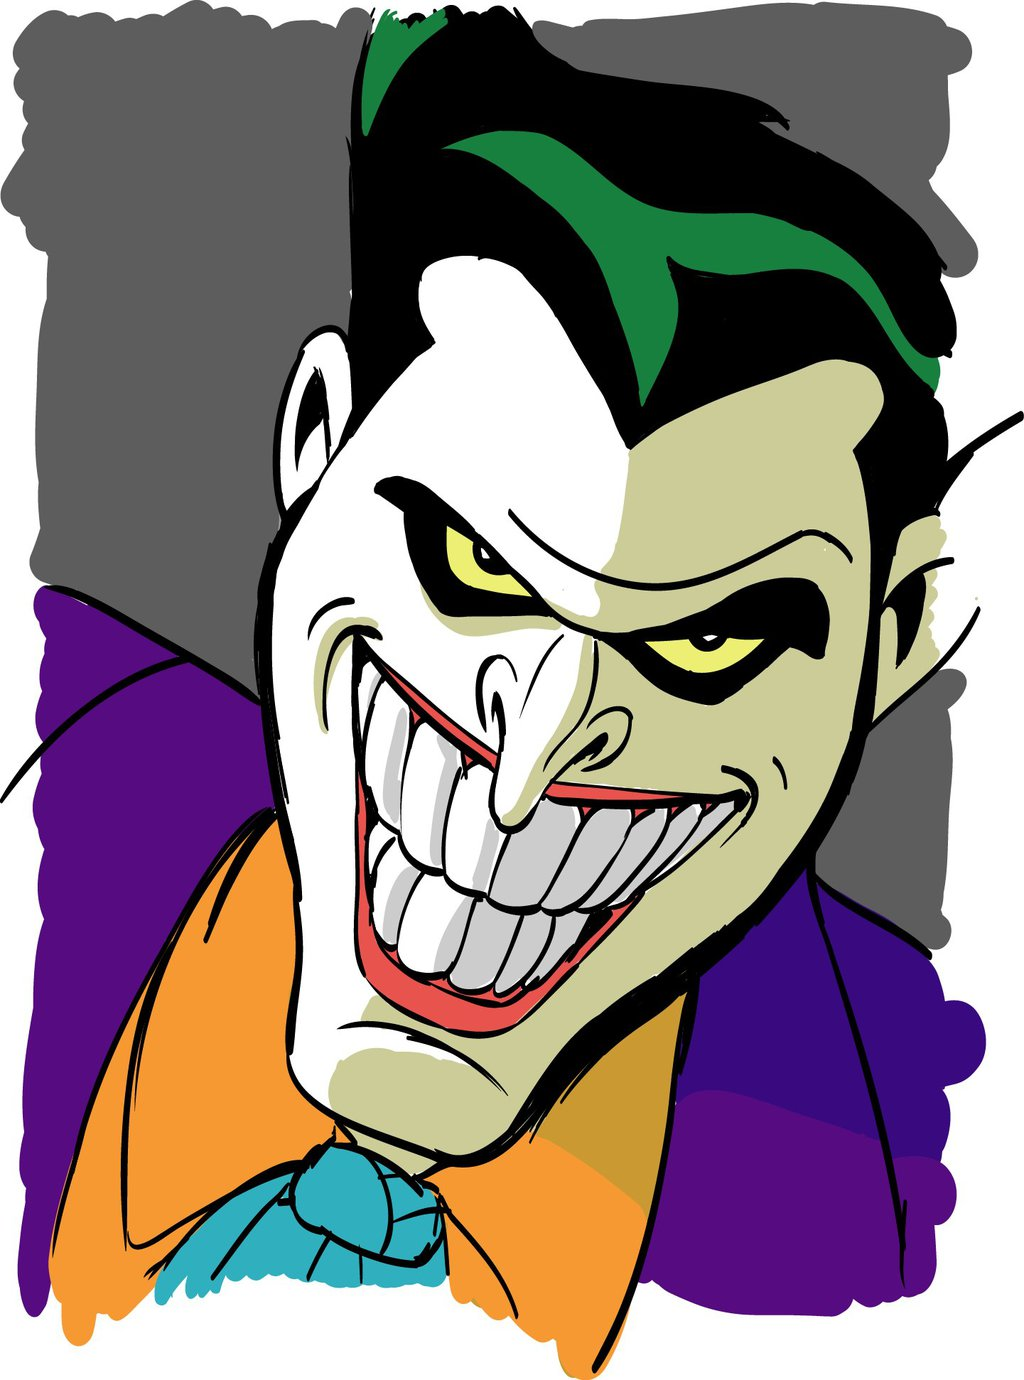 Joker clipart  Art For Joker on